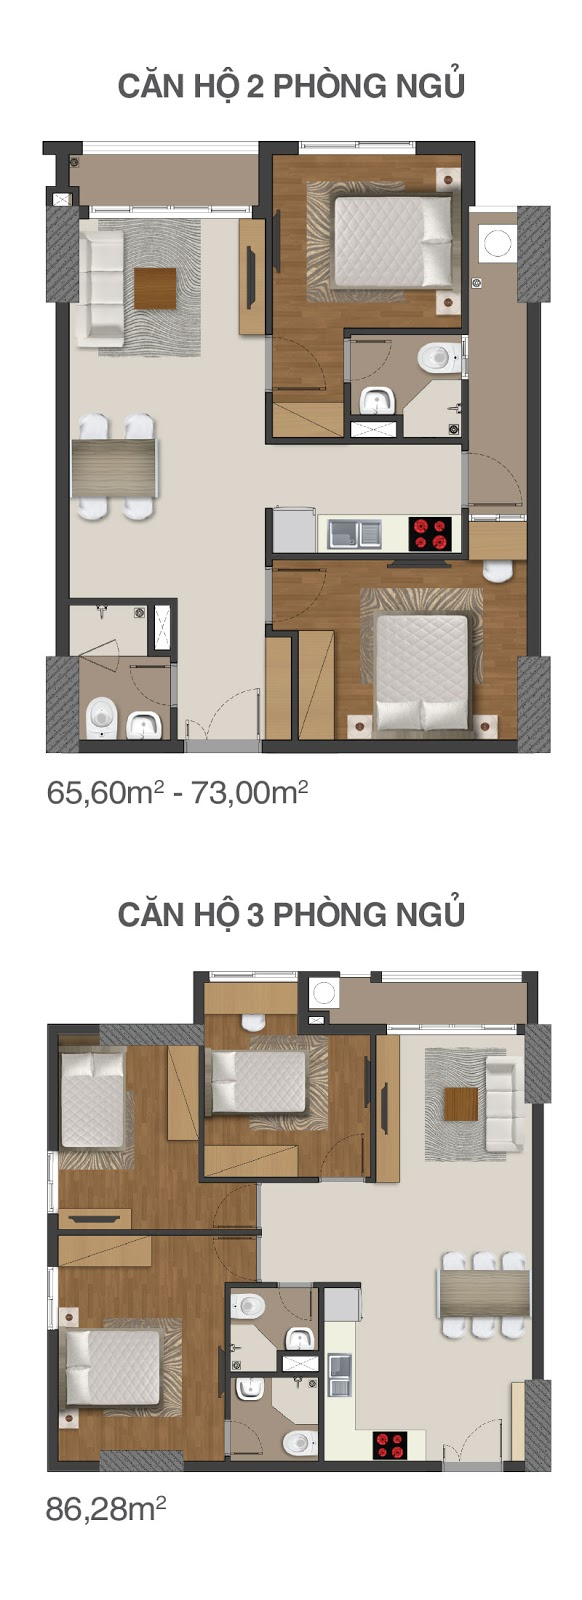 can-ho-3-phong-ngu-richmond-city